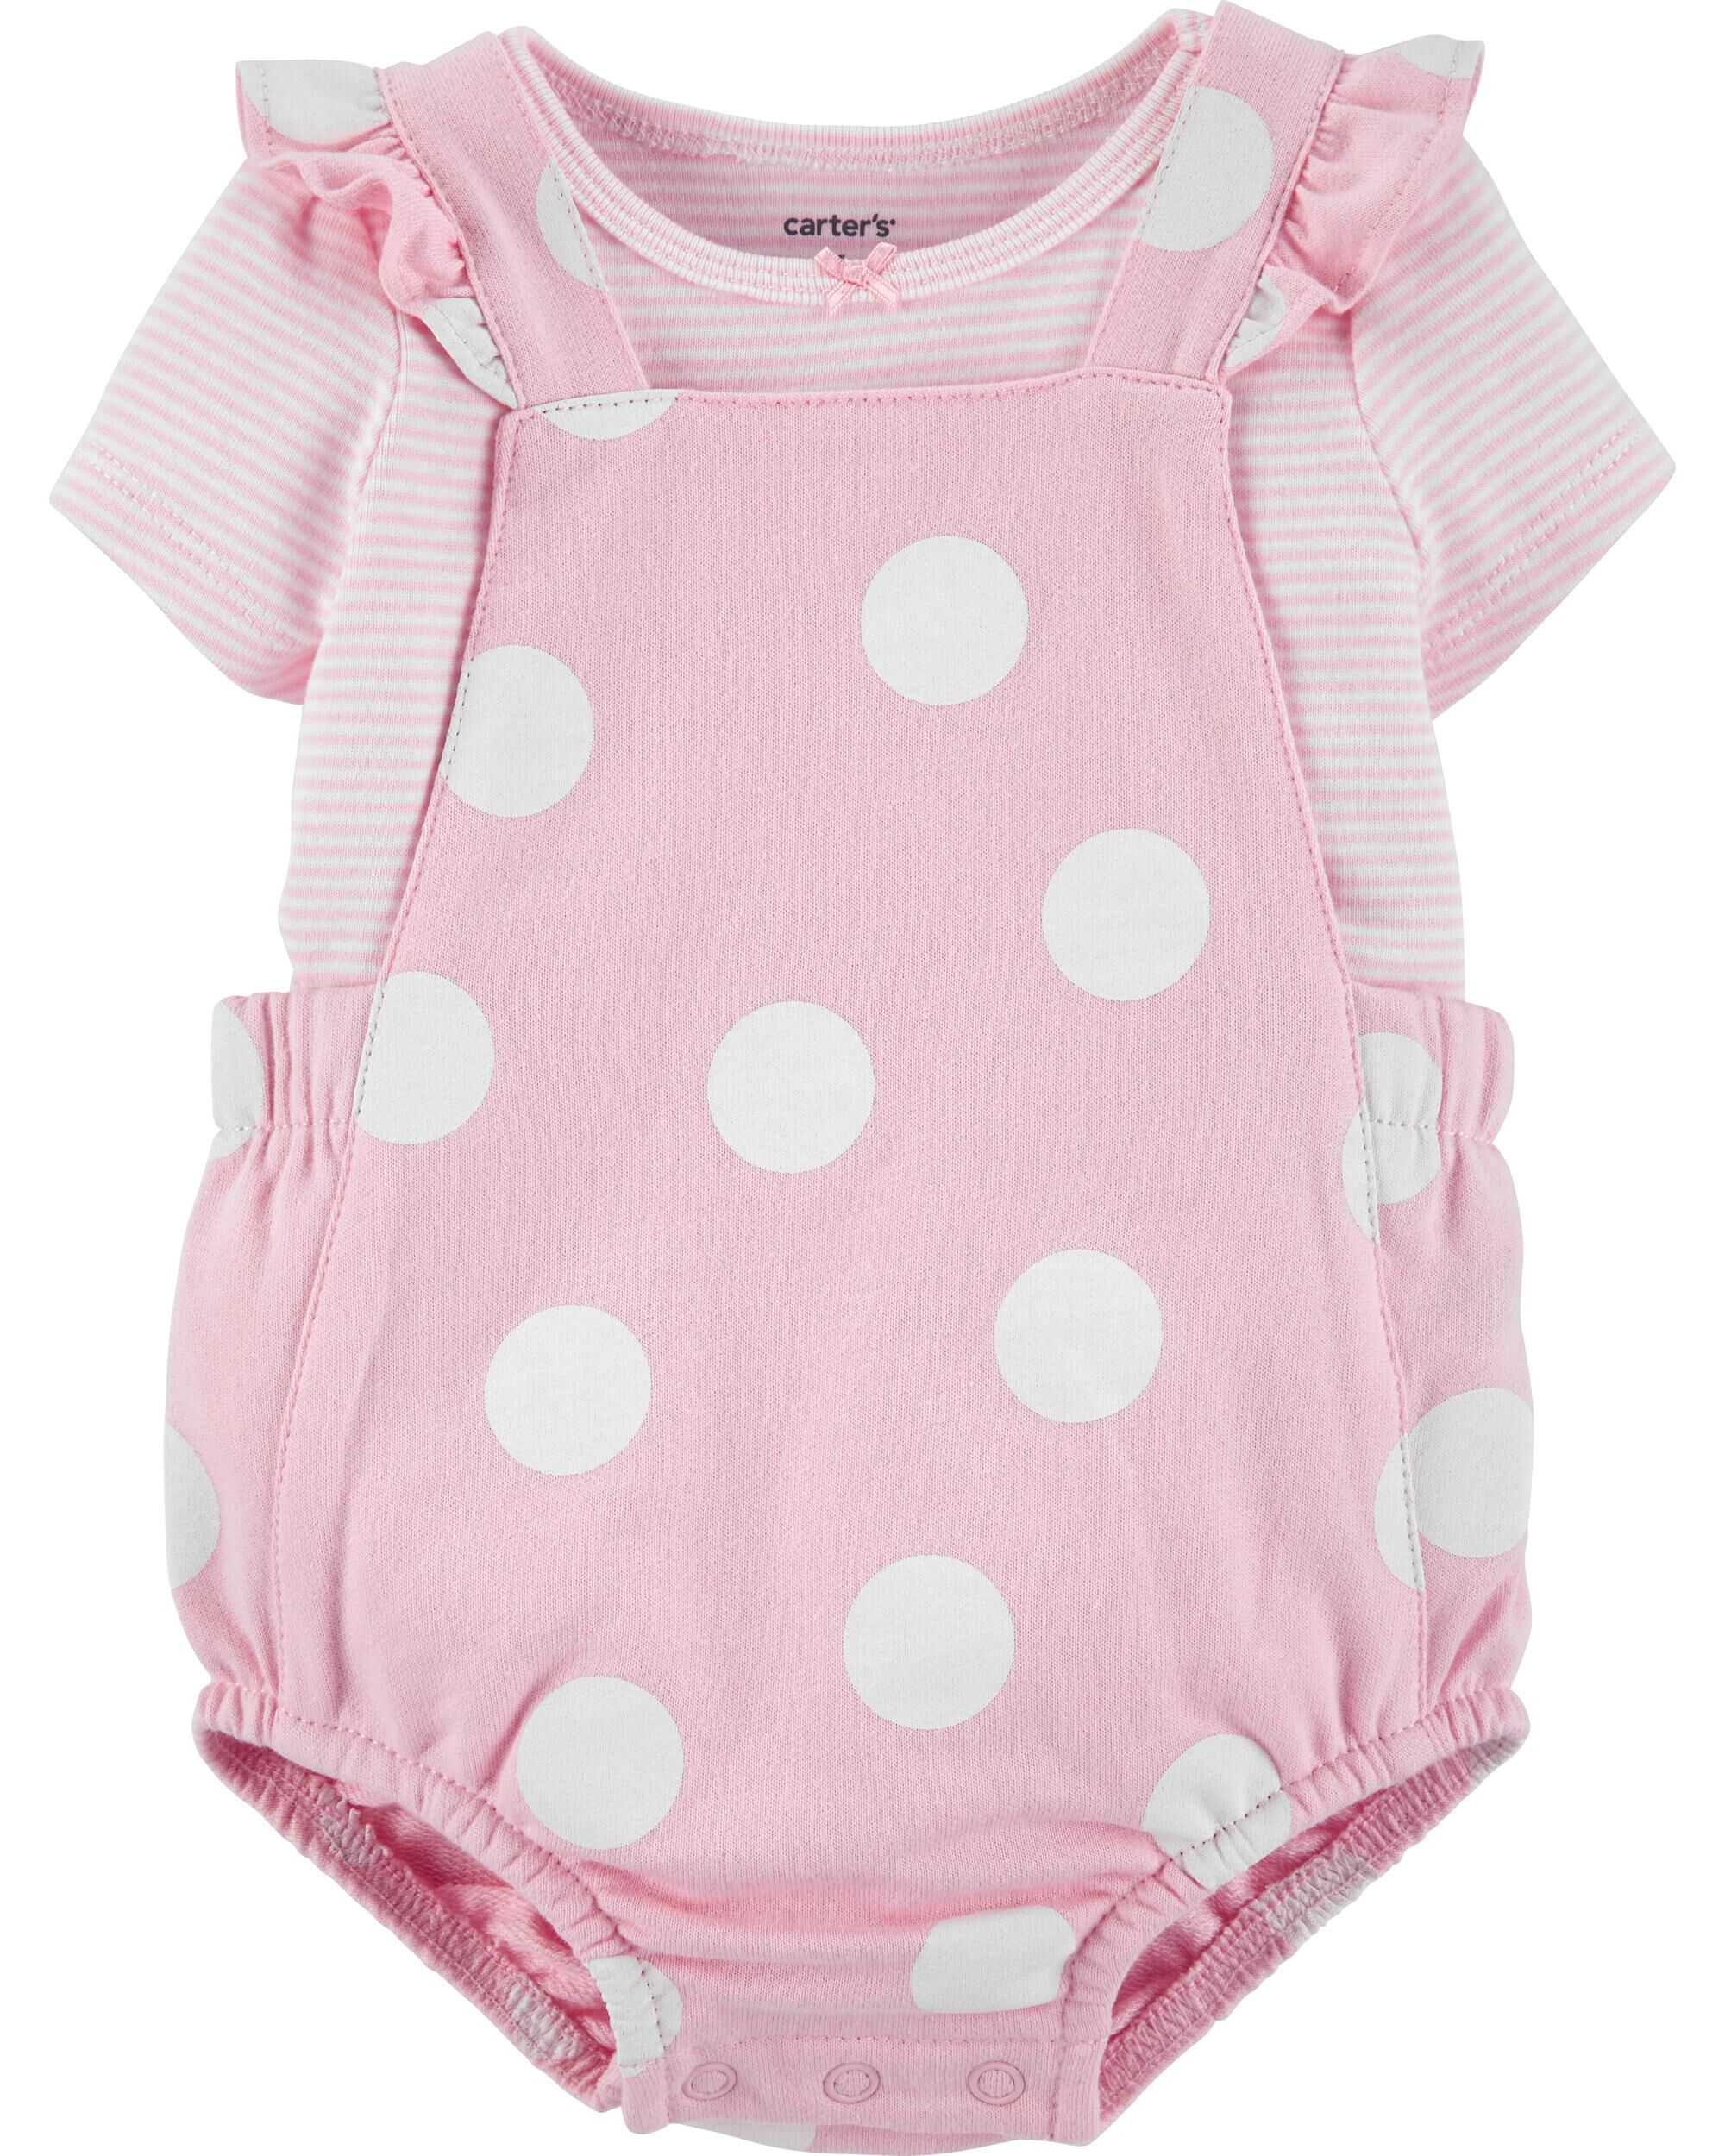 2-Piece Sunsuit Coverall Set